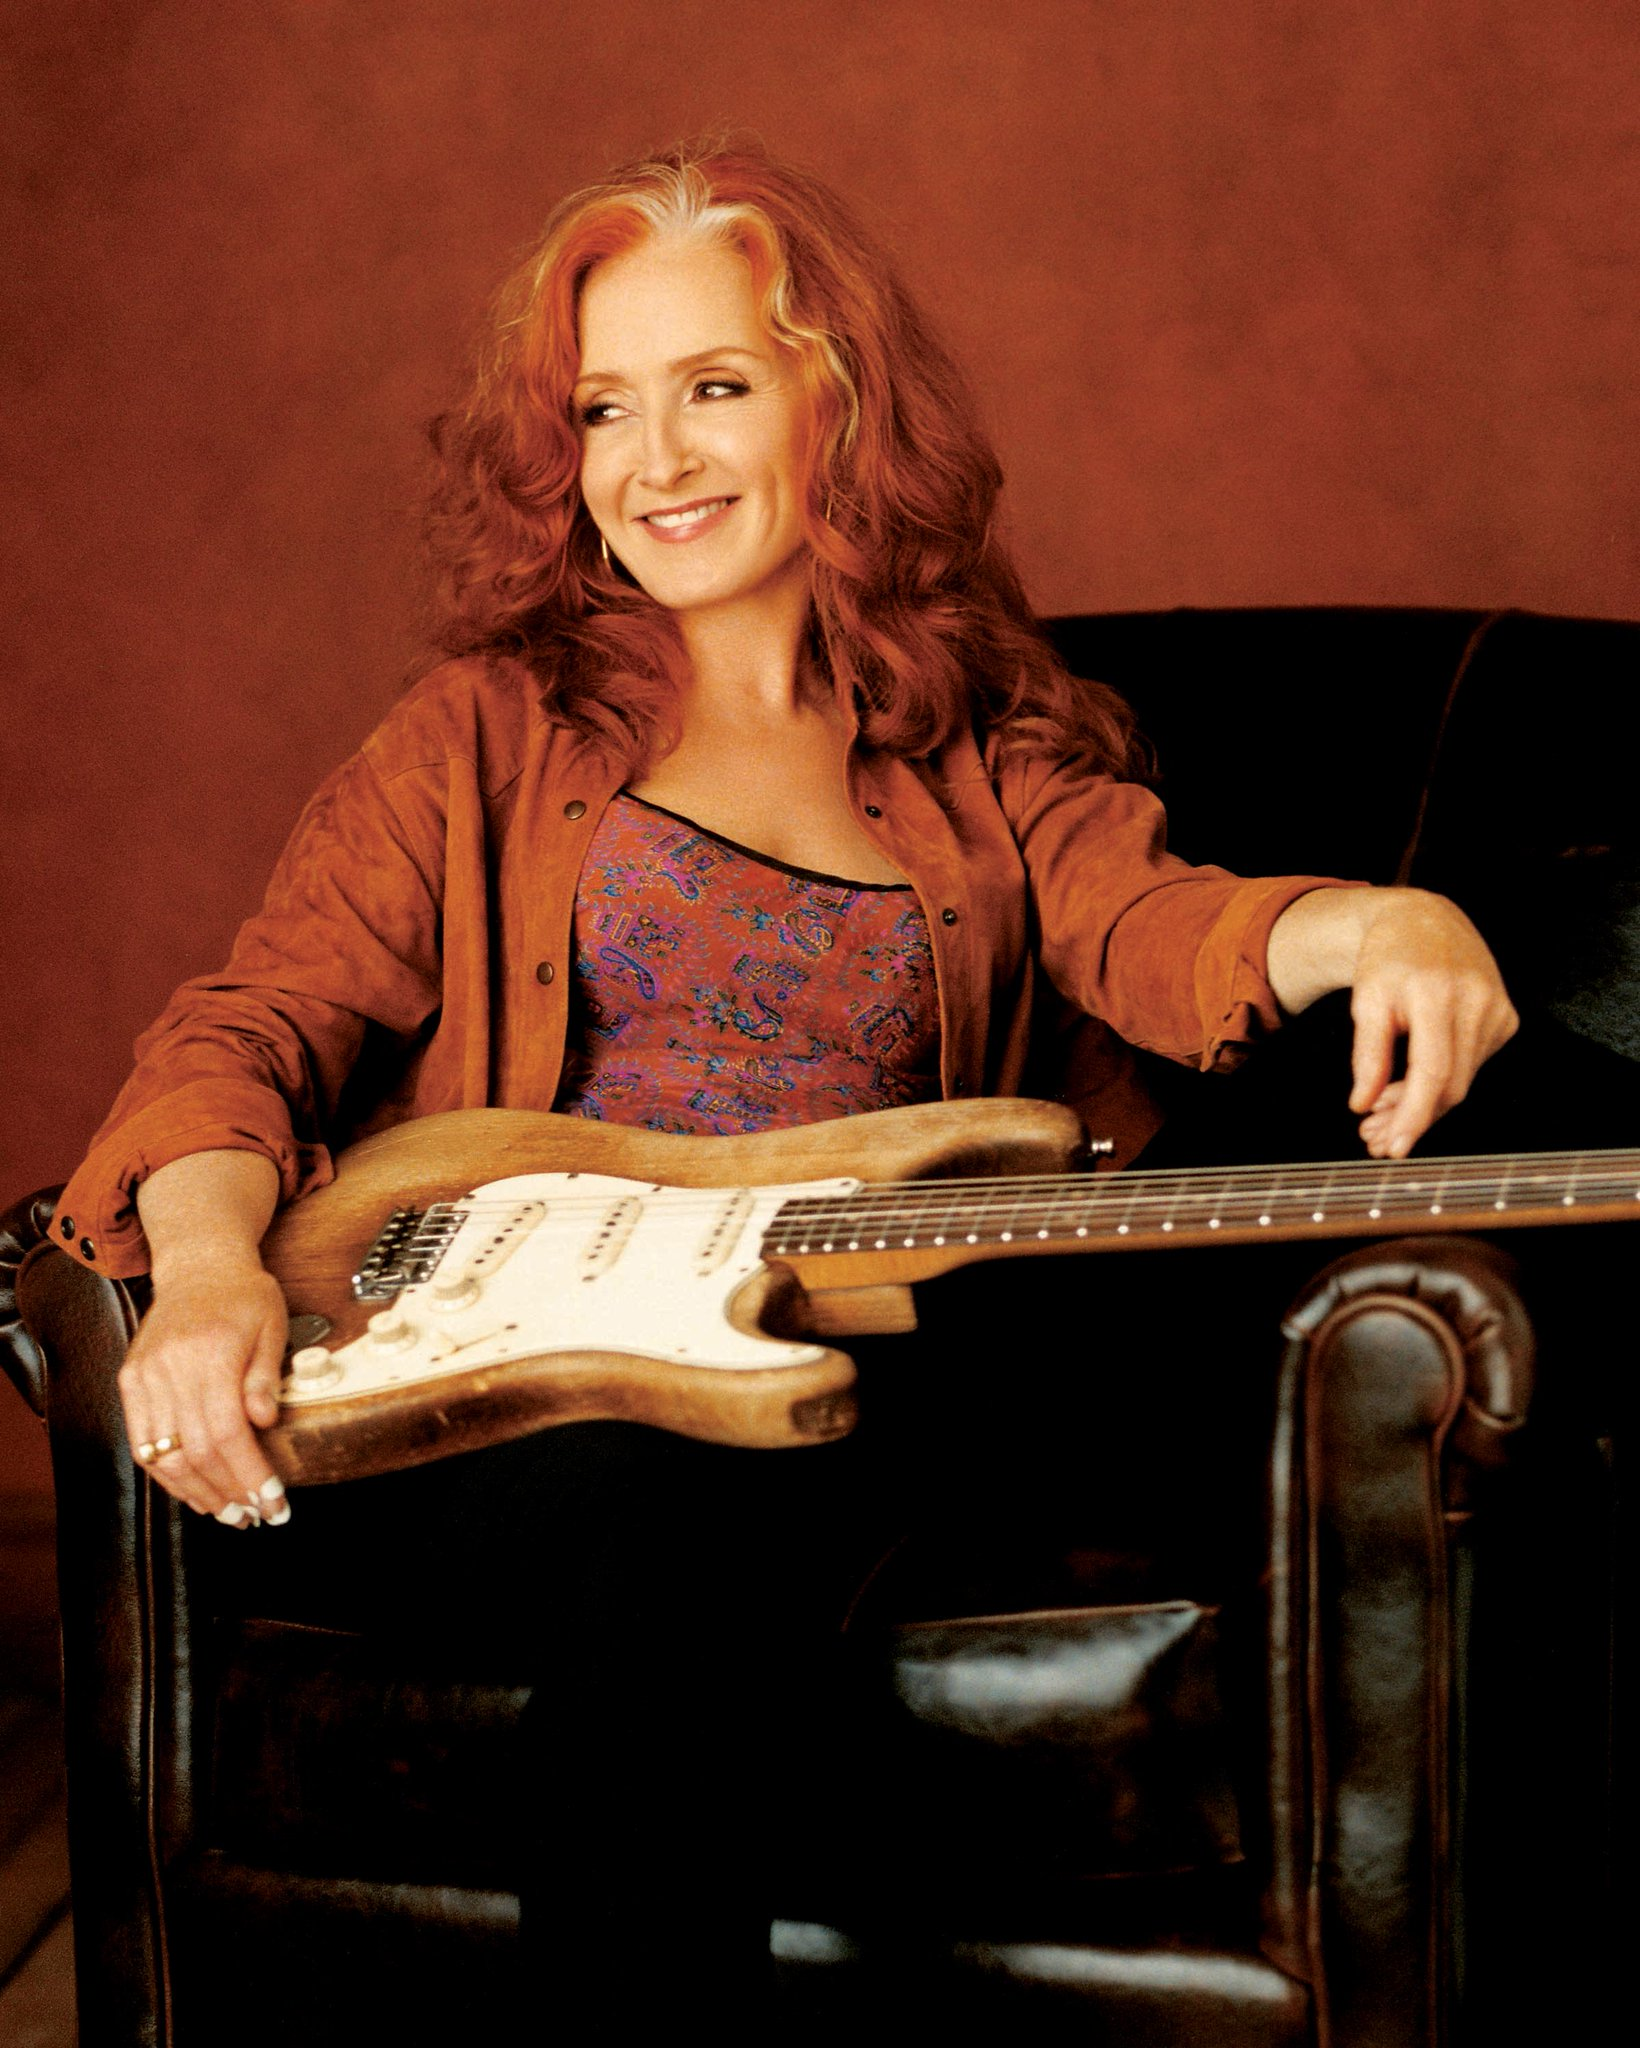 Happy Birthday to Bonnie Raitt who turns 68 today!